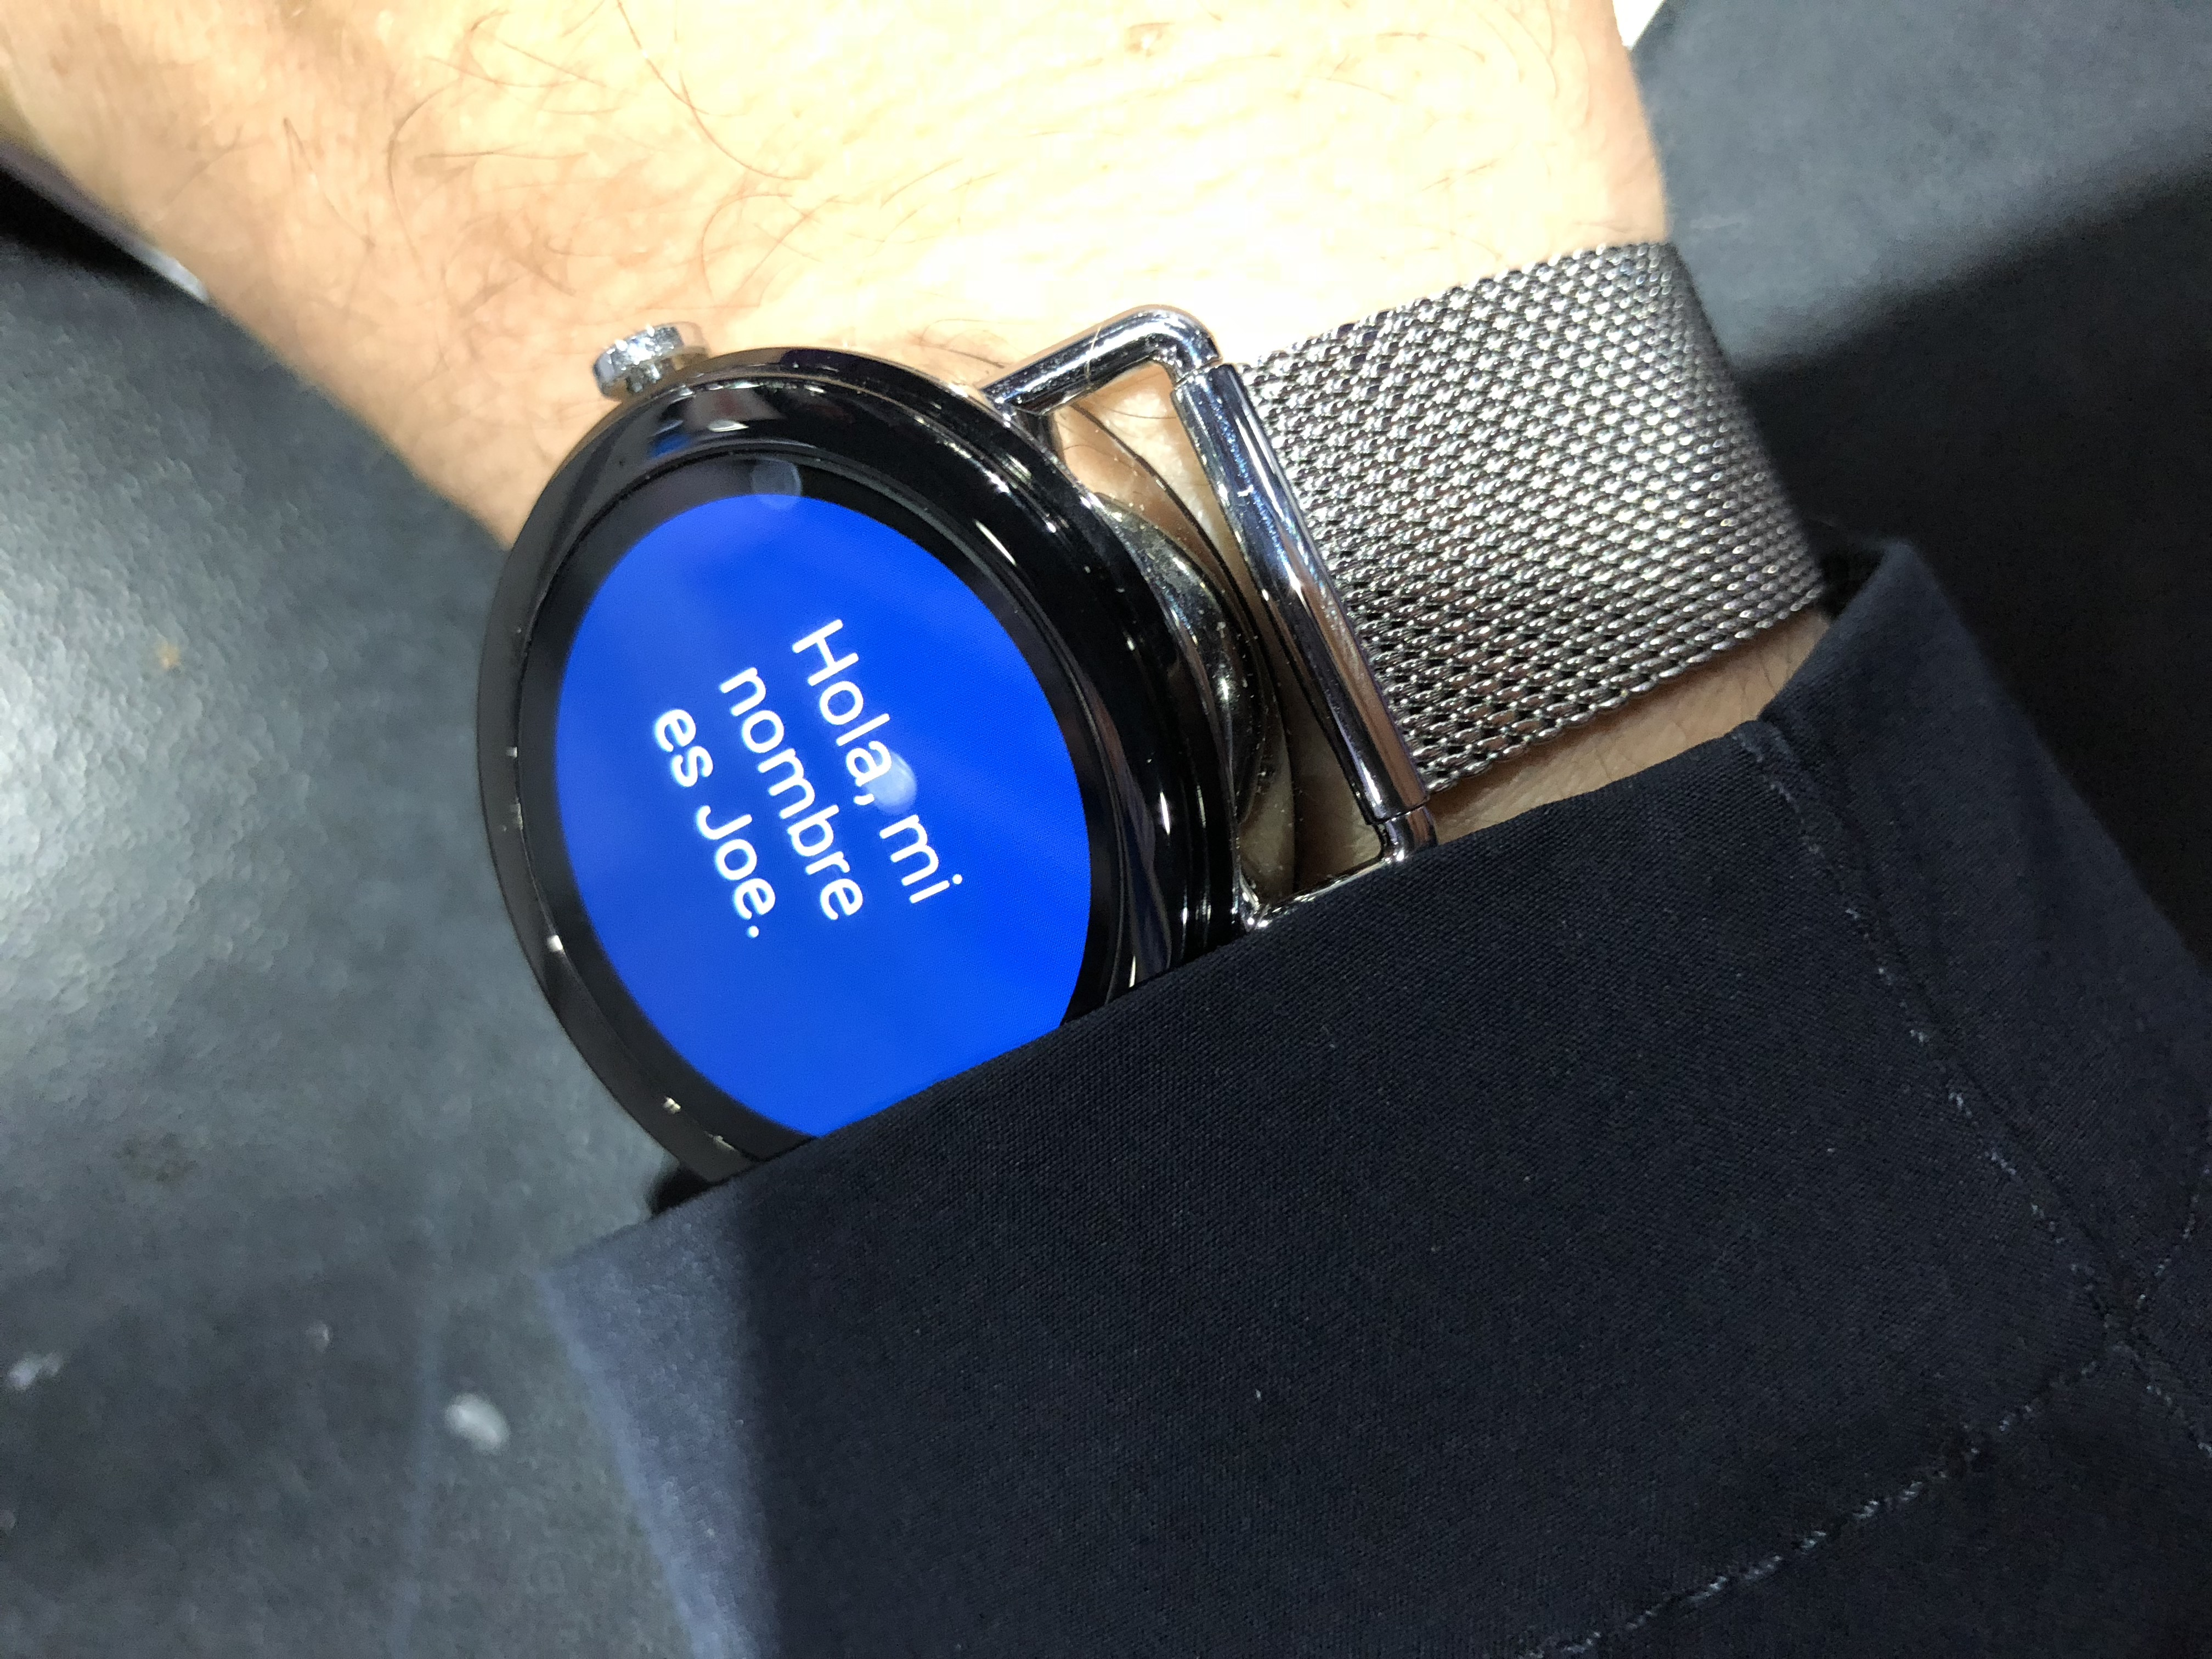 The Skagen Falster is a high fashion Android wearable